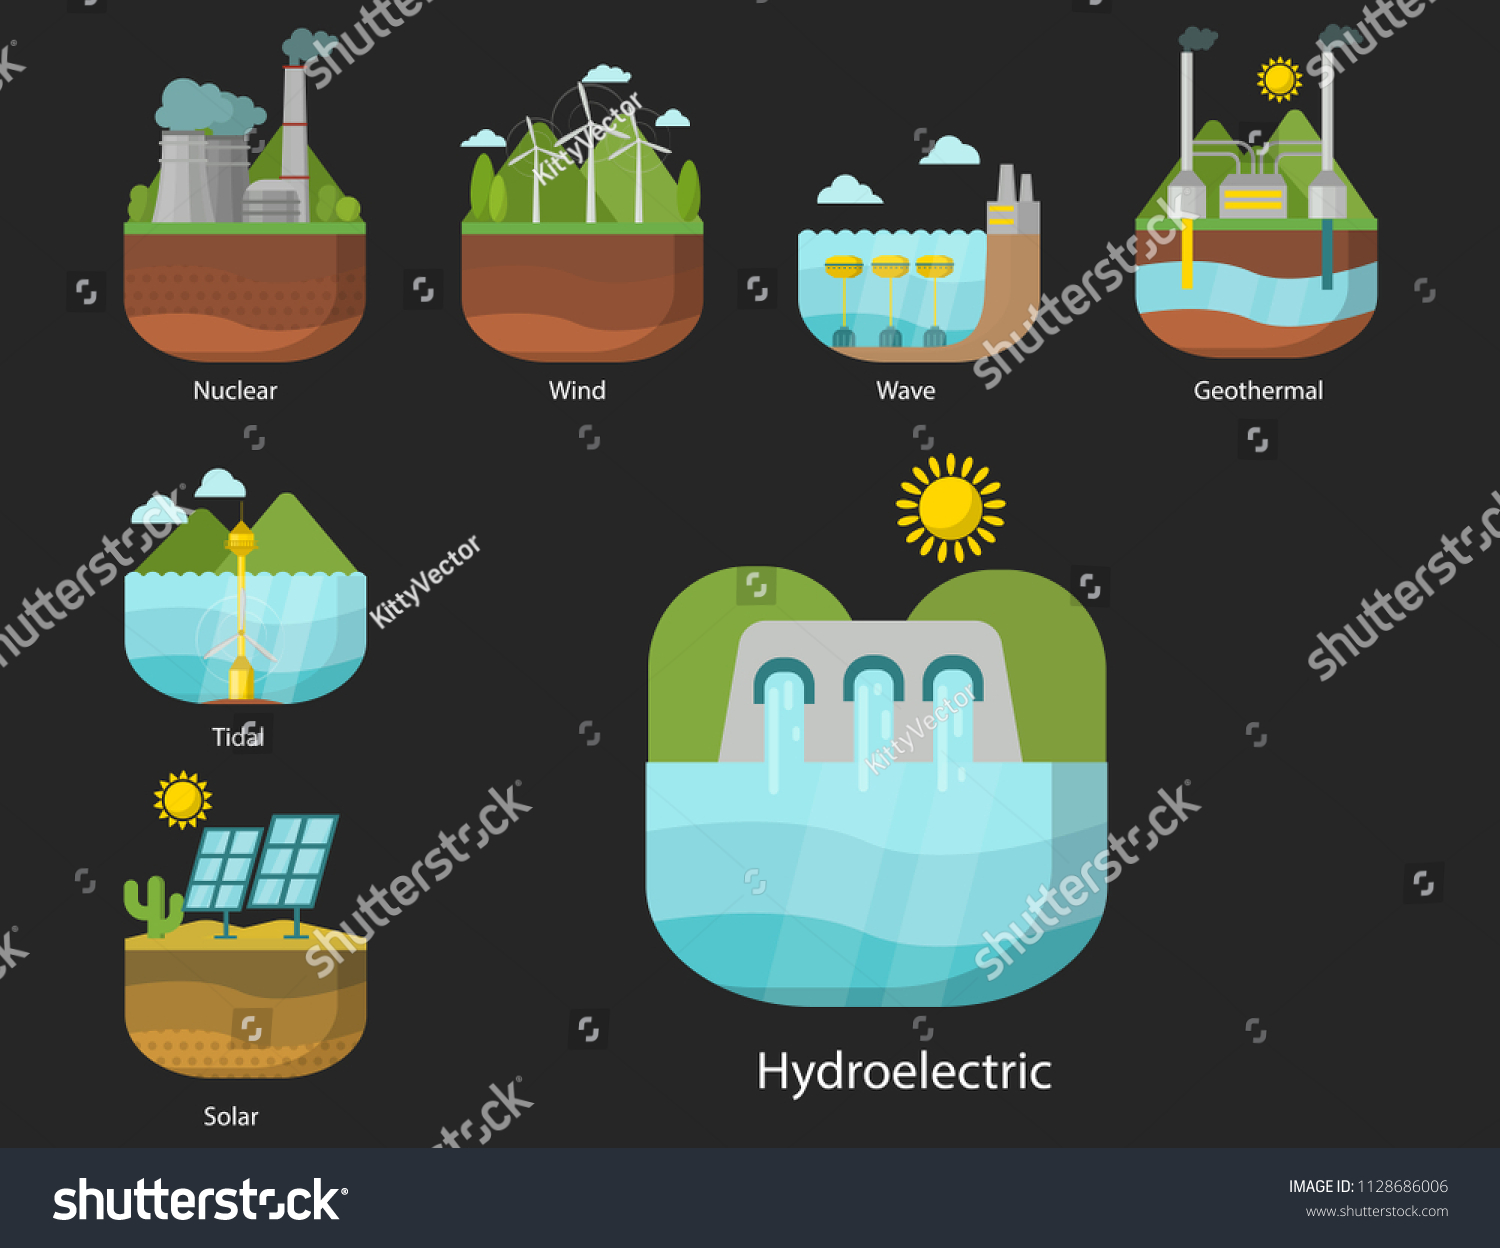 Generation Energy Types Power Plant Vector Stock Royalty Geothermal Diagram Renewable Alternative Source Solar And Tidal Wind